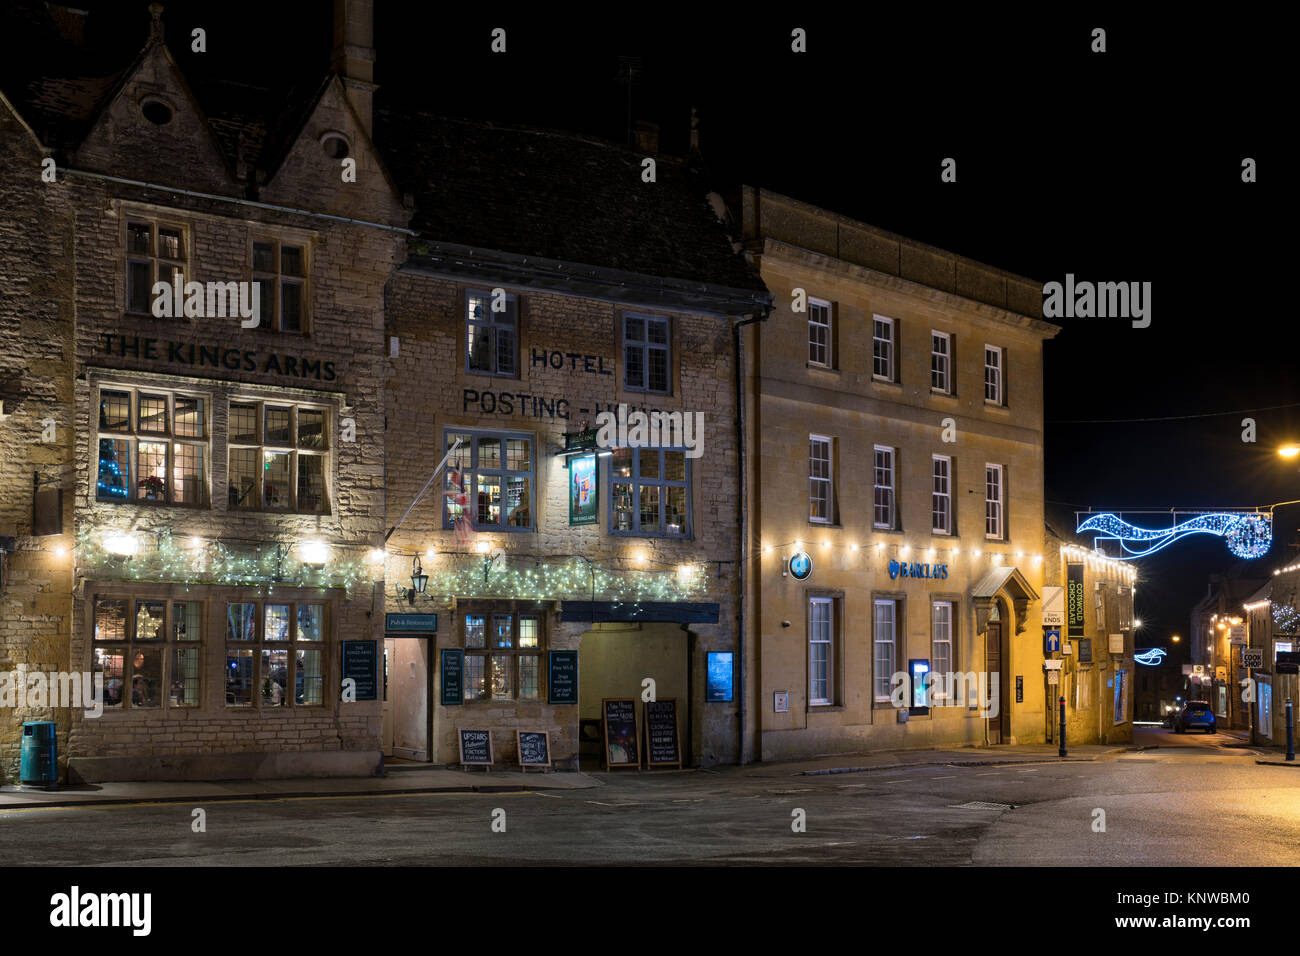 The Kings Arms and Posting house hotel with christmas decorations at night. Stow on the Wold, Cotswolds, Gloucestershire, - Stock Image